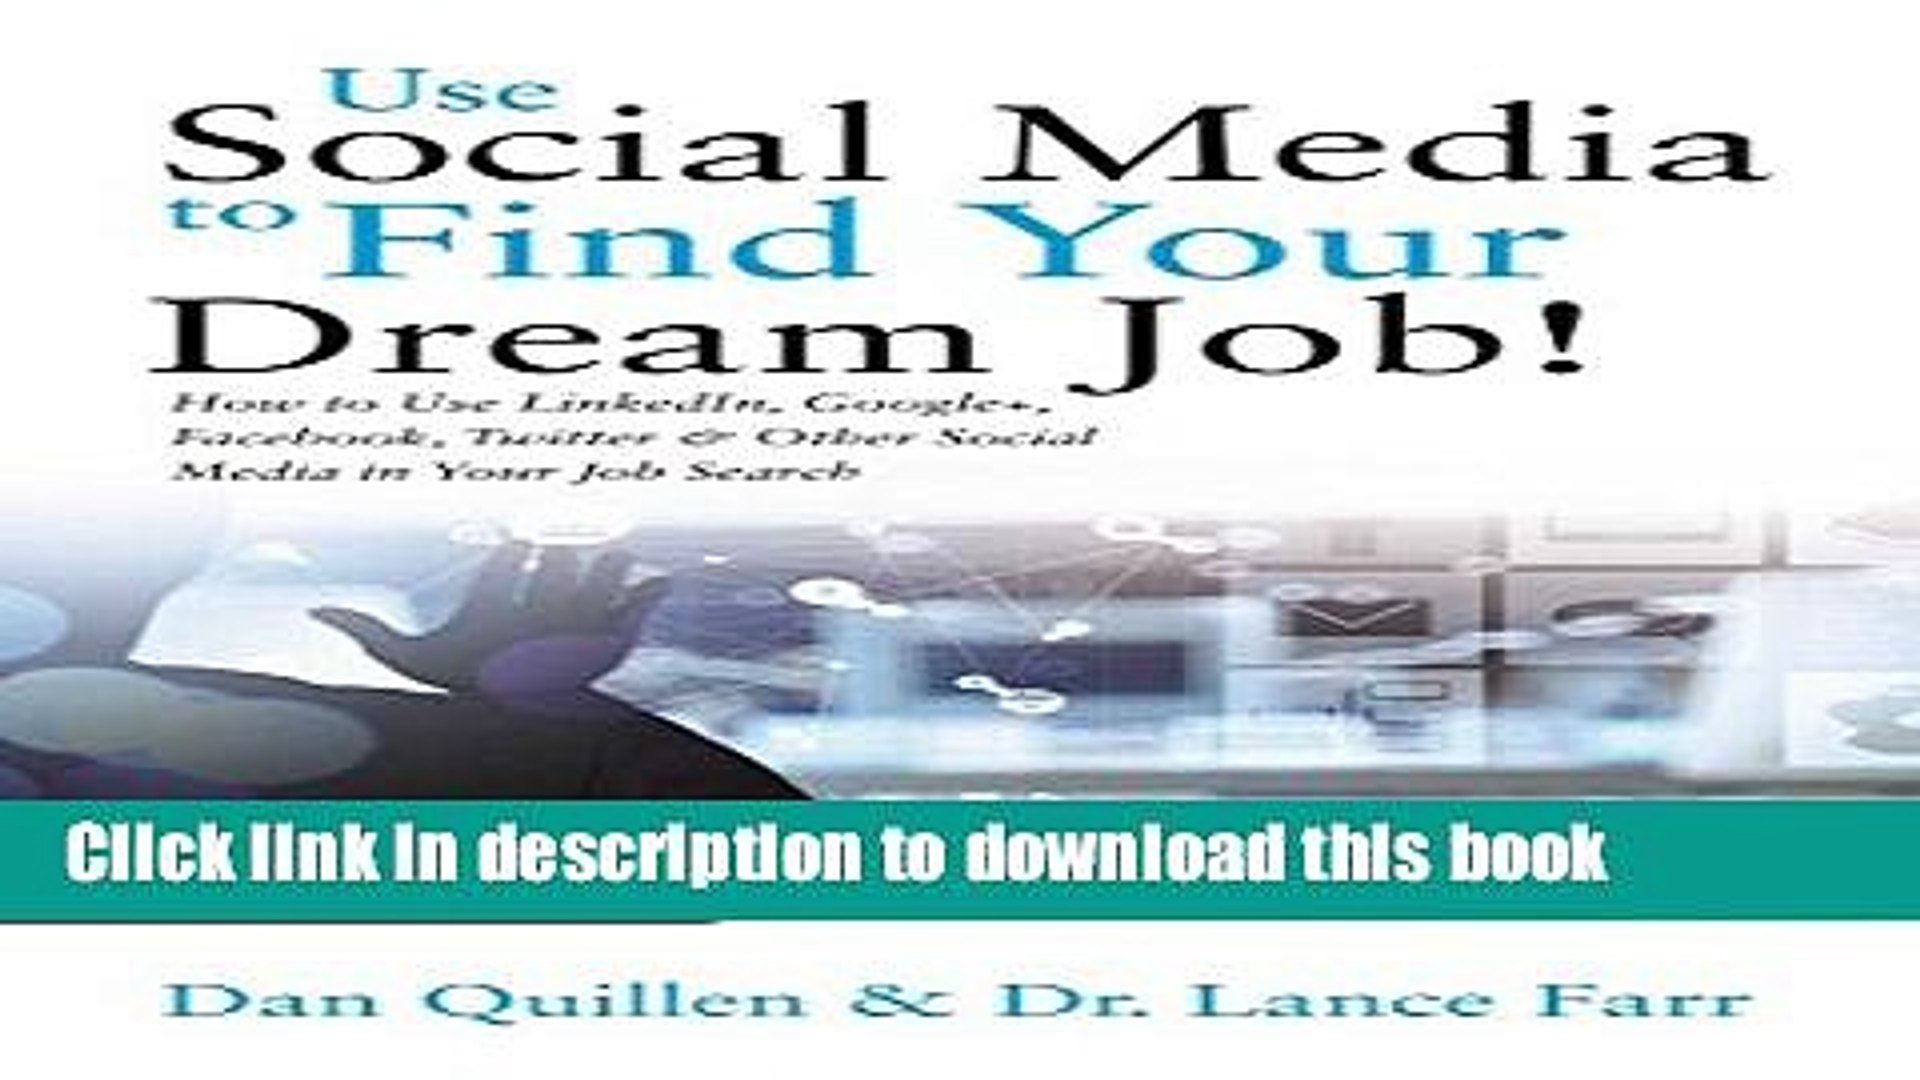 Download Use Social Media to Find Your Dream Job!: How to Use LinkedIn, Google+, Facebook, Twitter